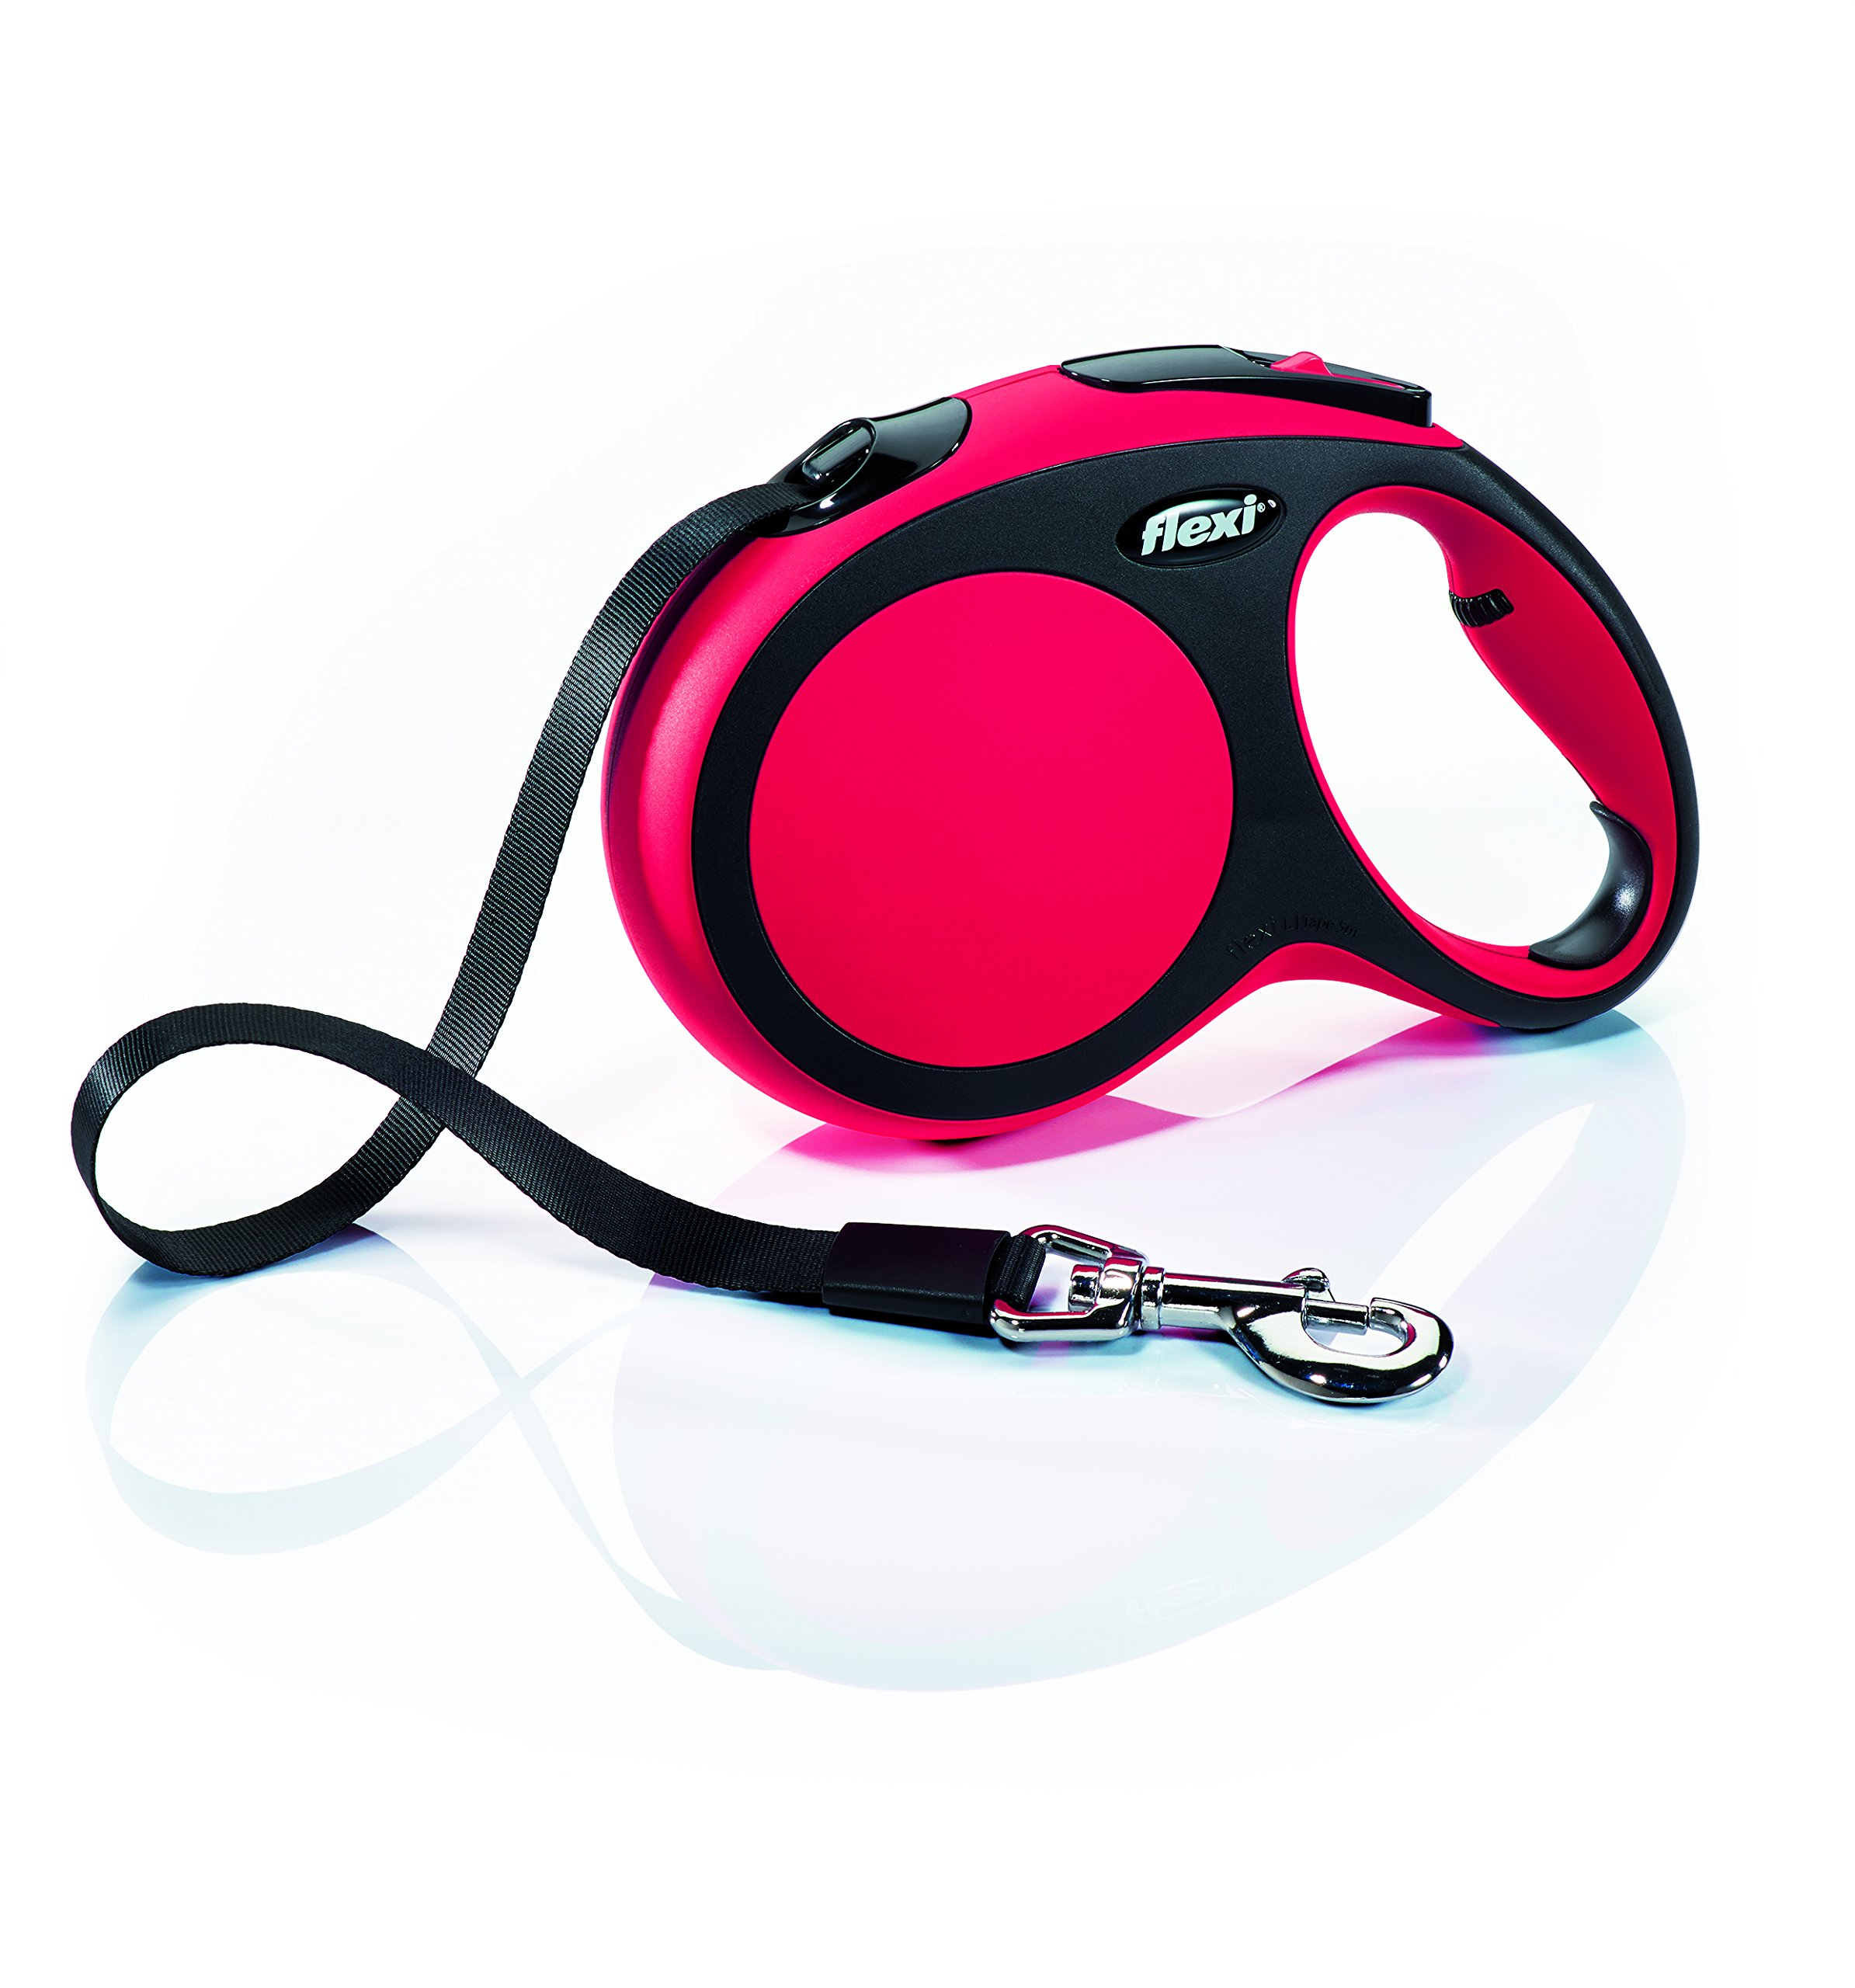 Flexi New Comfort Retractable Dog Leash (Tape), 16 ft, Large, Red by Flexi